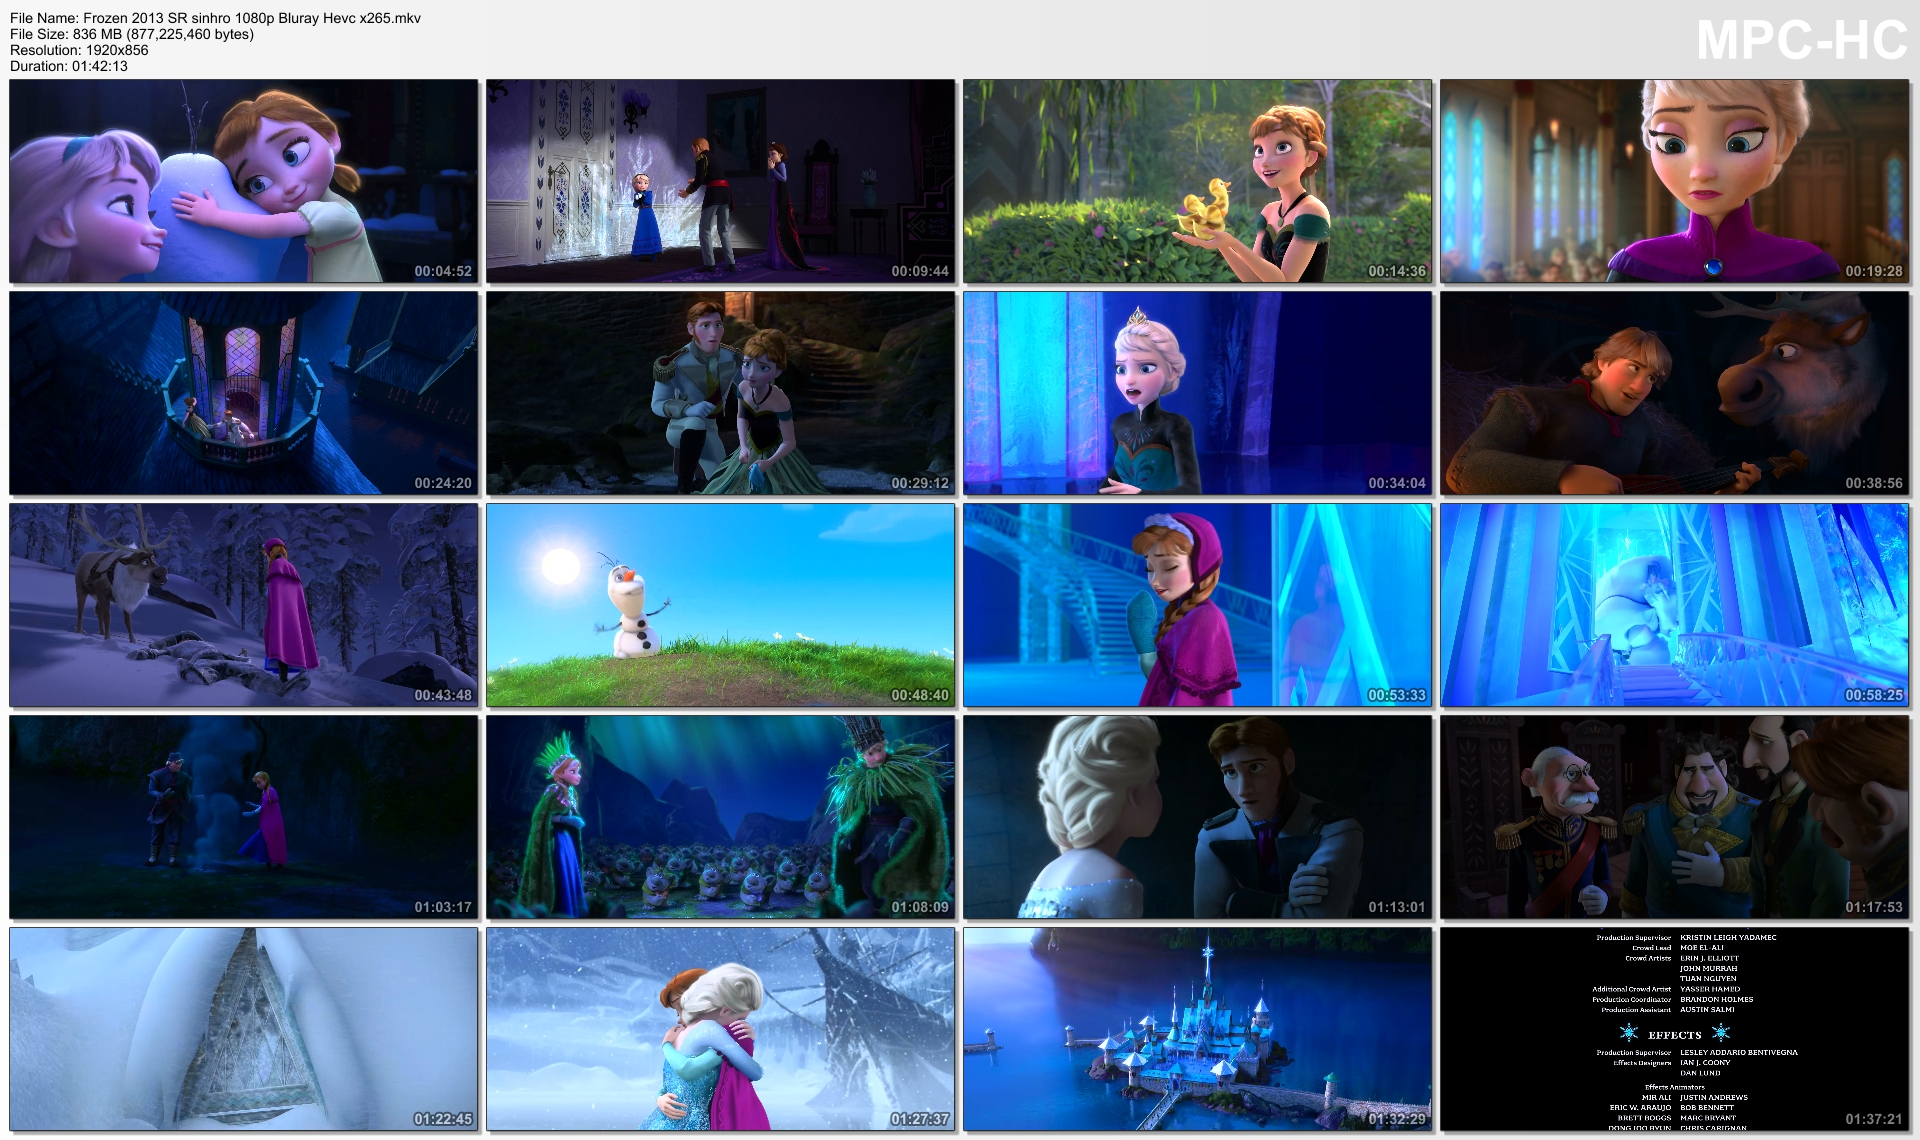 Frozen_2013_SR_sinhro_1080p_Bluray_Hevc_